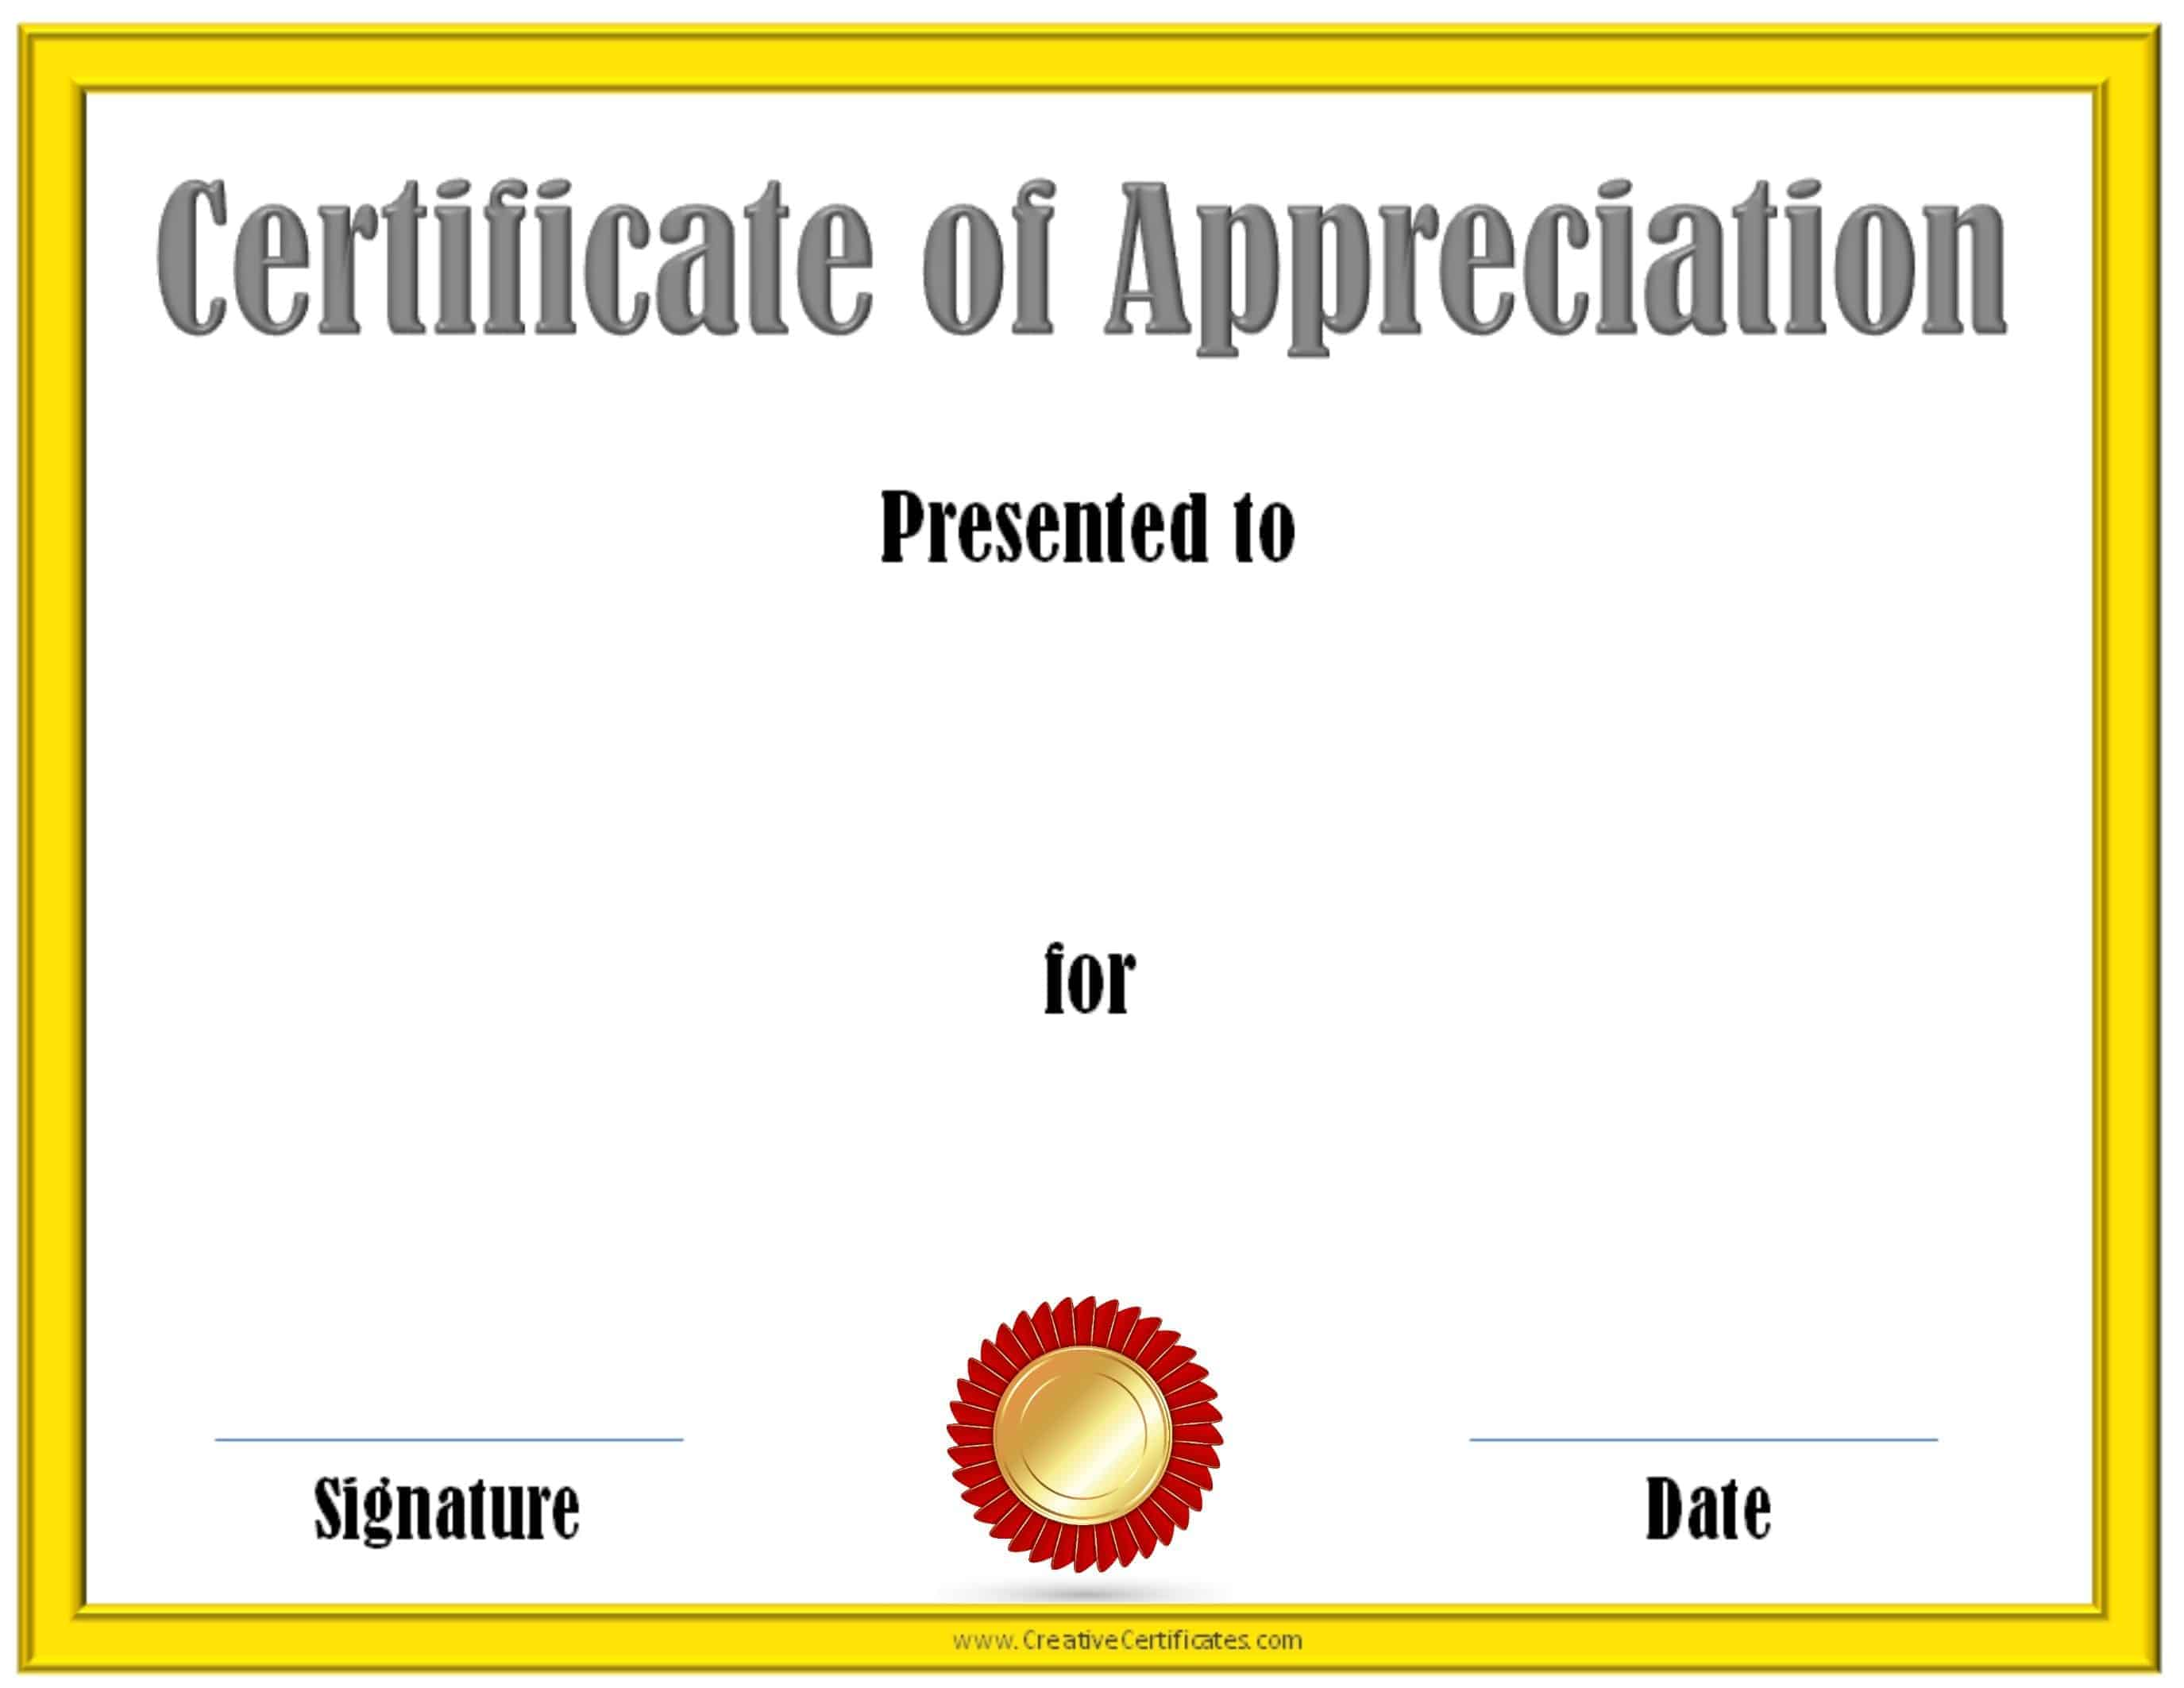 Free editable certificate of appreciation customize for Certificate of appreciation template free